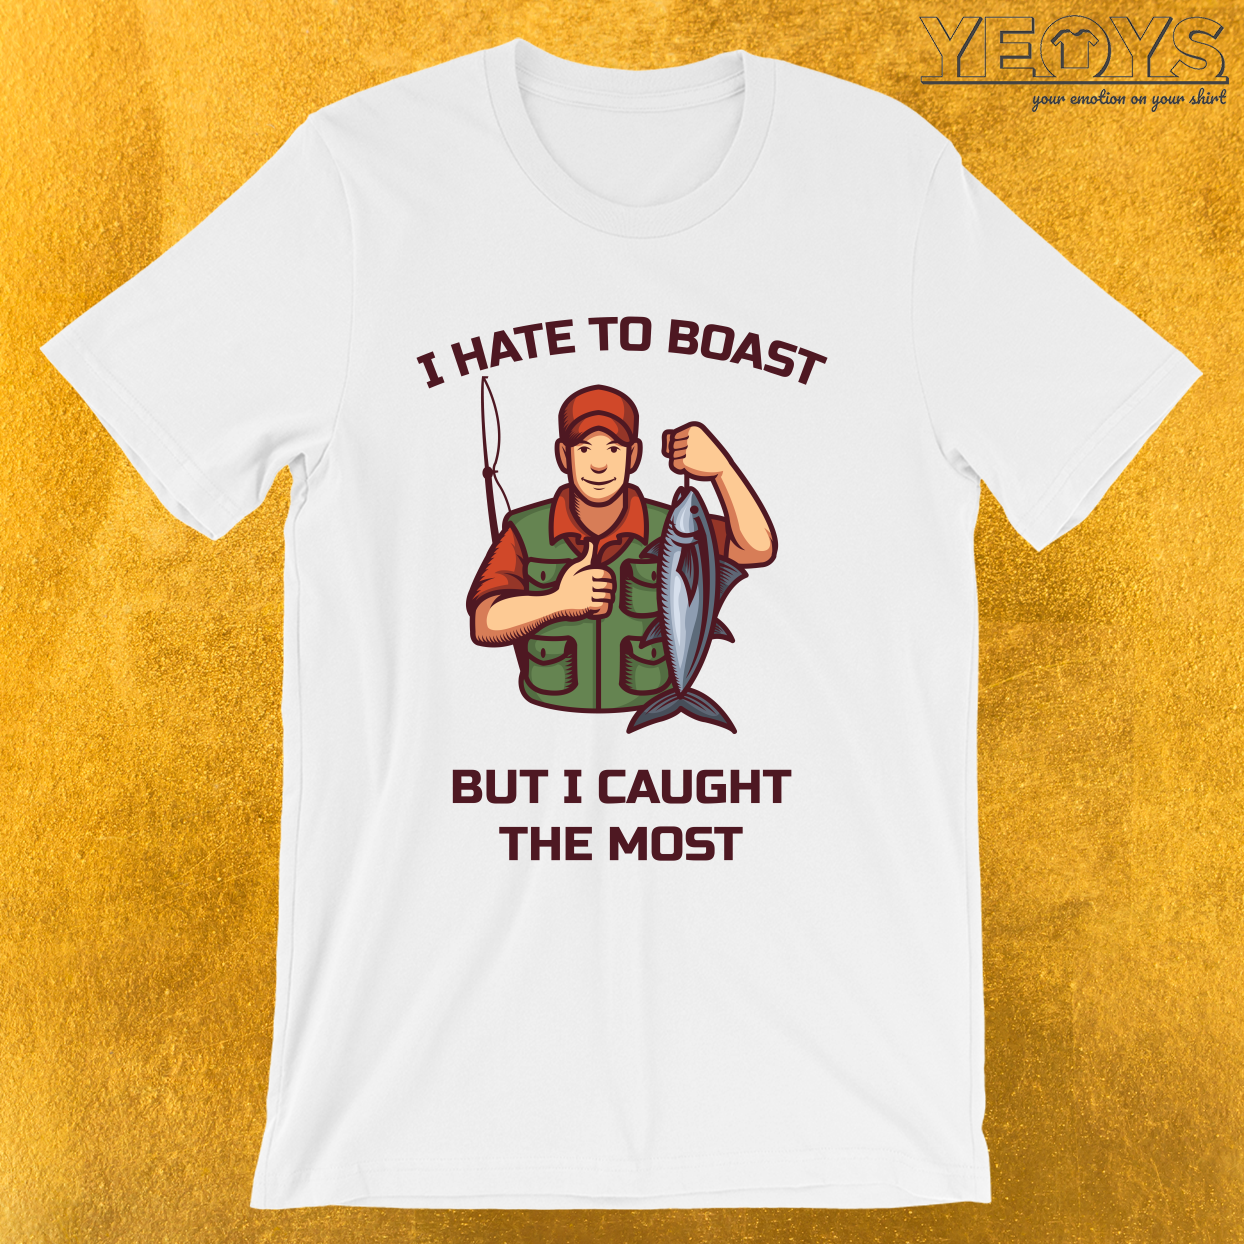 I Hate To Boast But I Caught The Most – Funny Fishing Tee